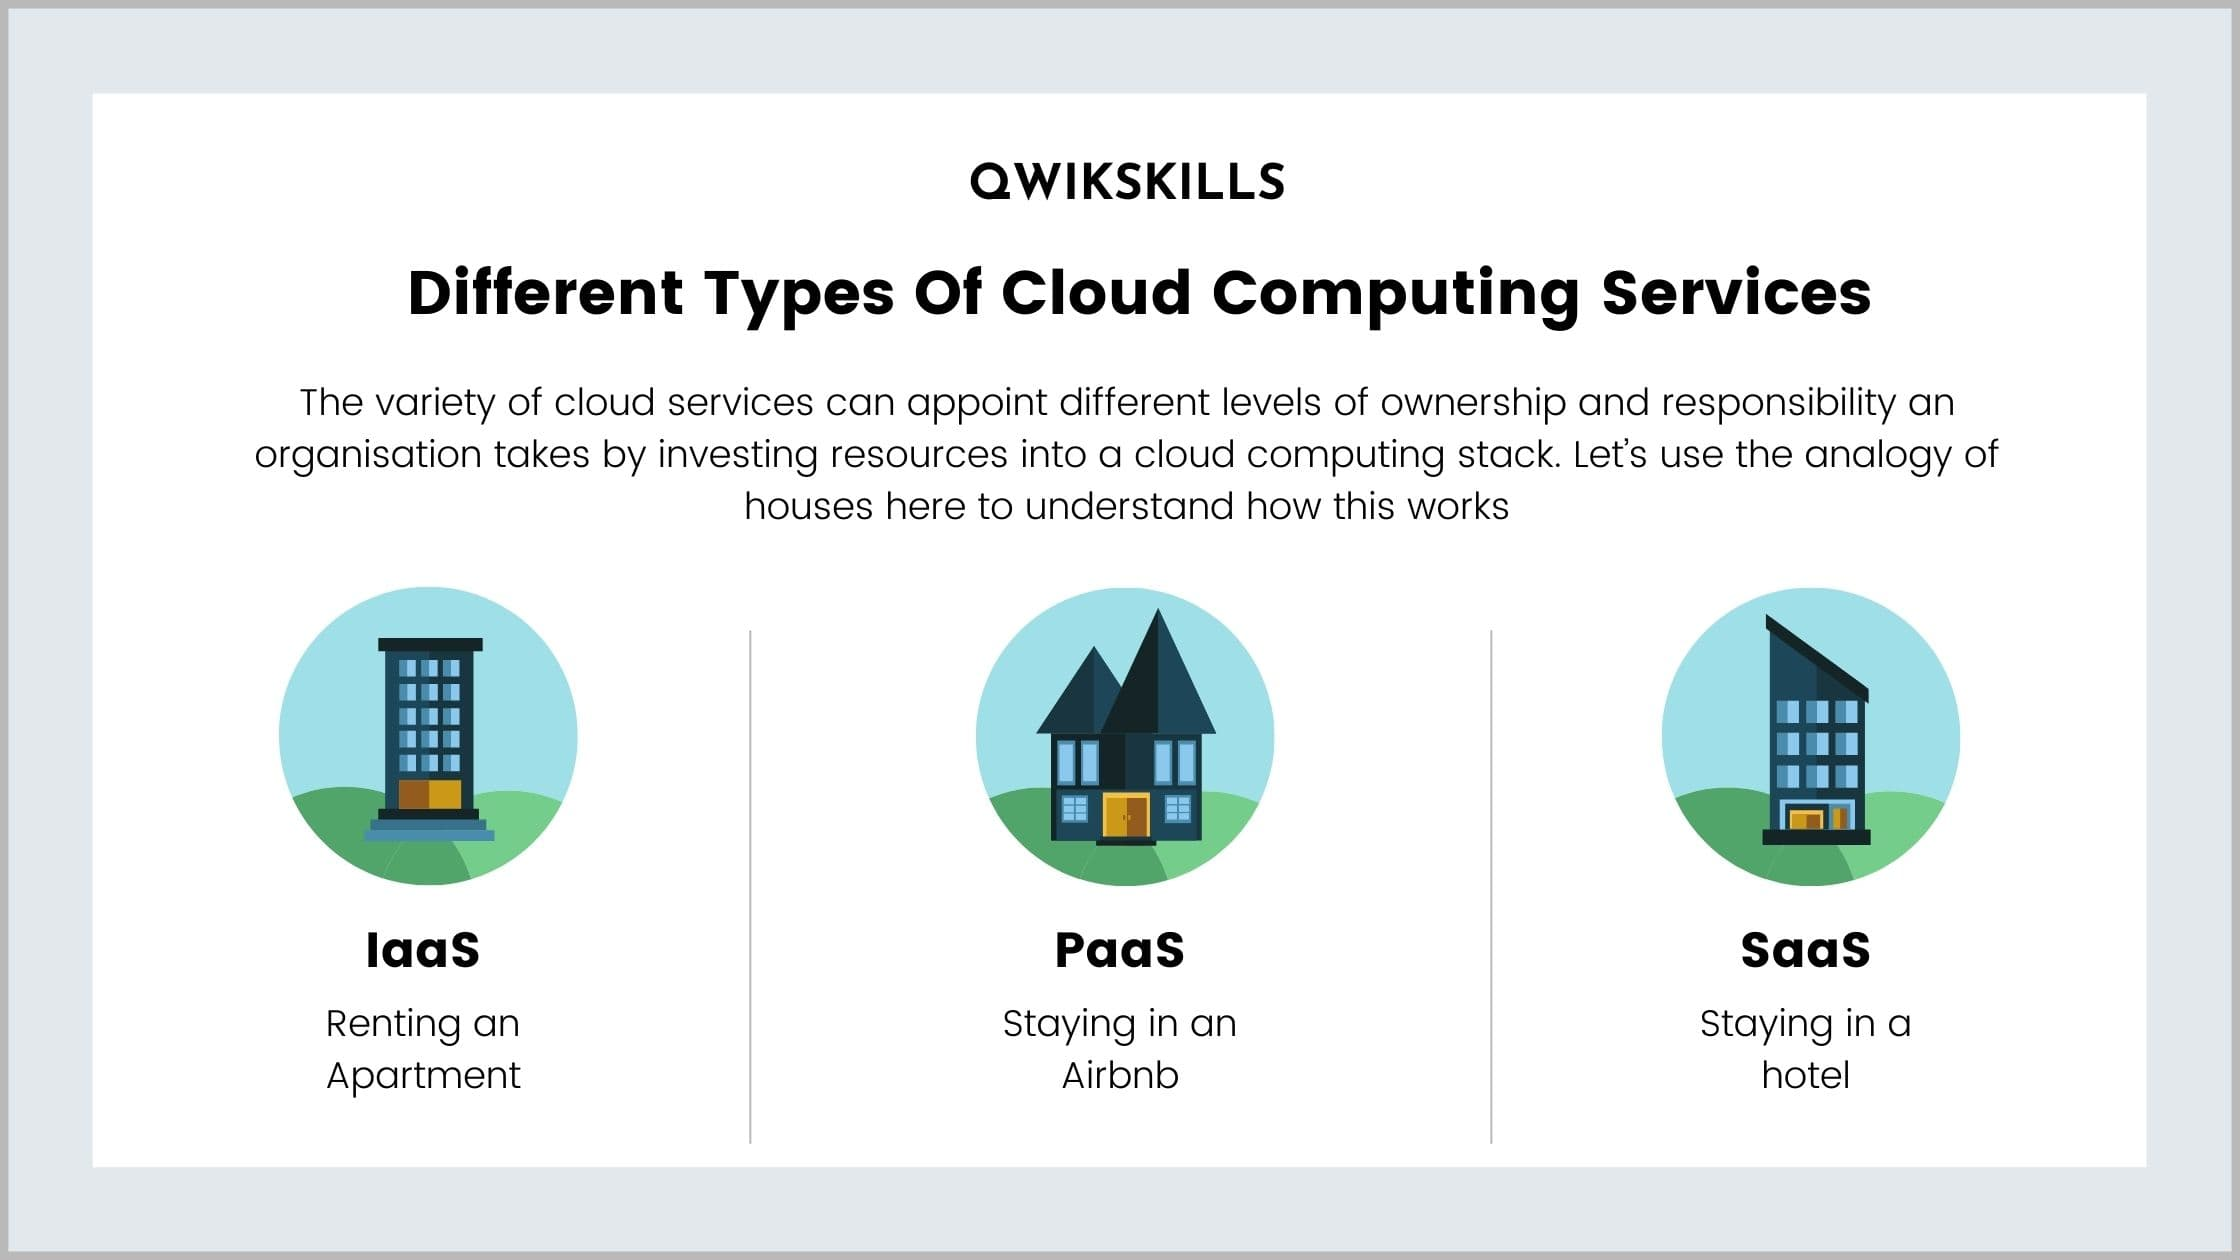 Different Types Of Cloud Computing Services